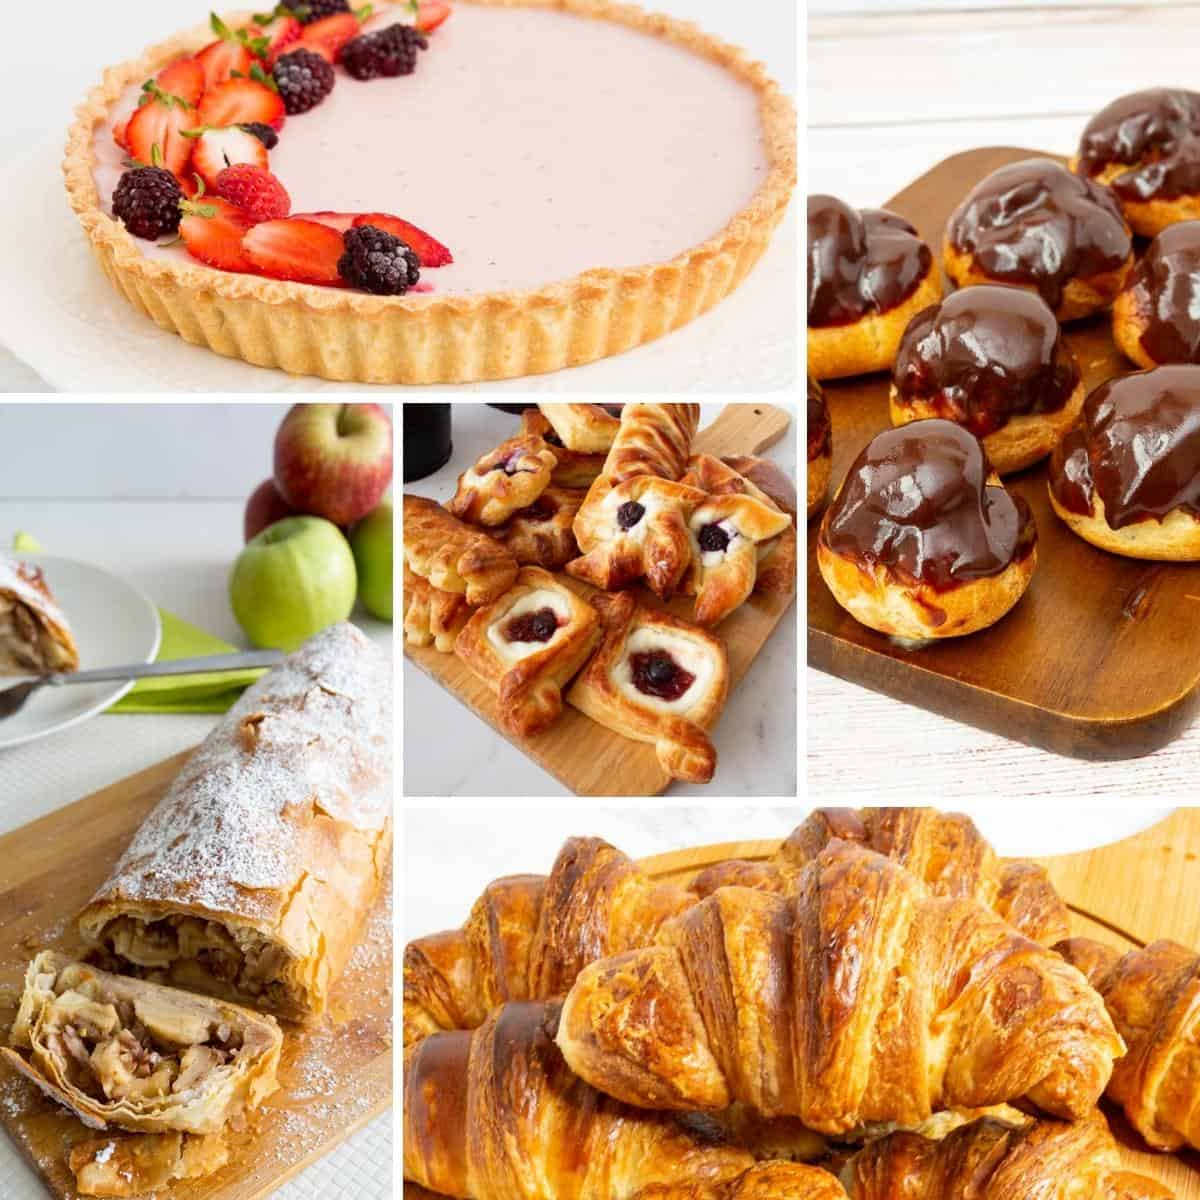 Collage of pastries for the free online pastry course.